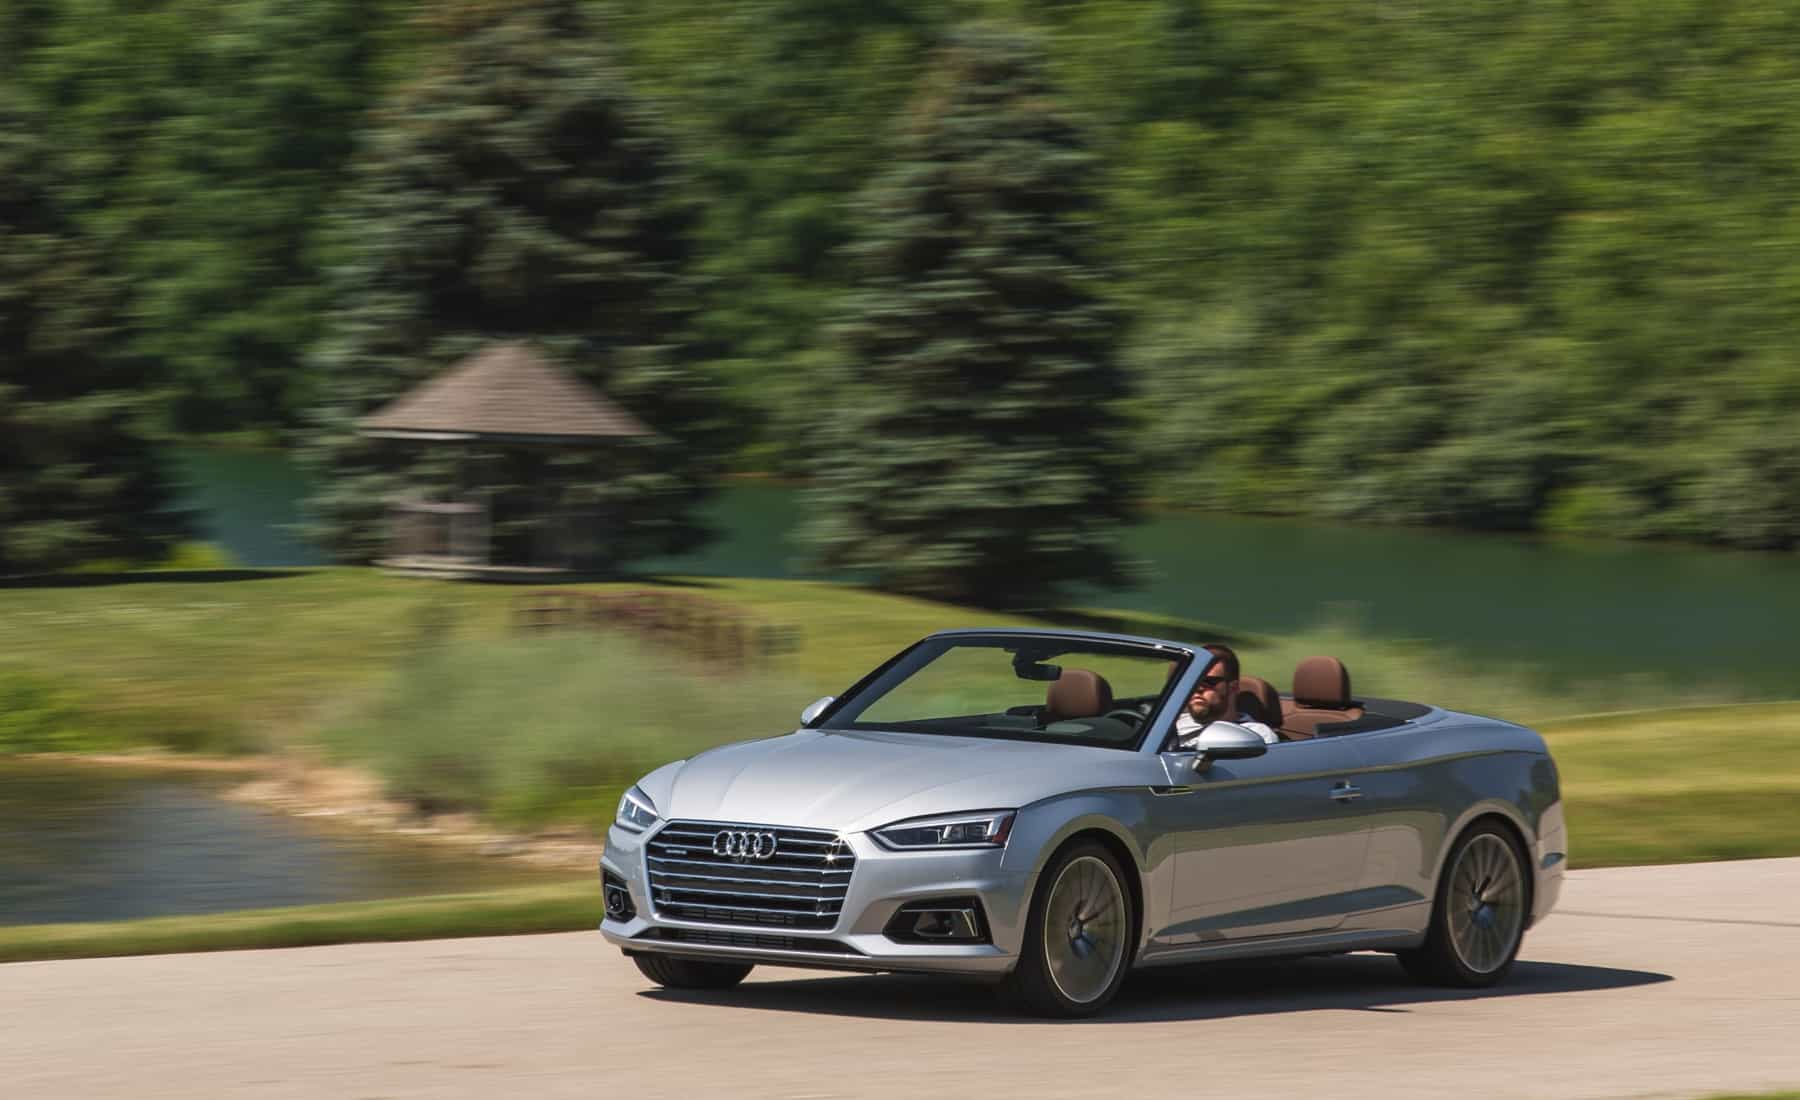 2018 Audi A5 Cabriolet Test Drive Roof Open Front And Side View (Photo 43 of 45)